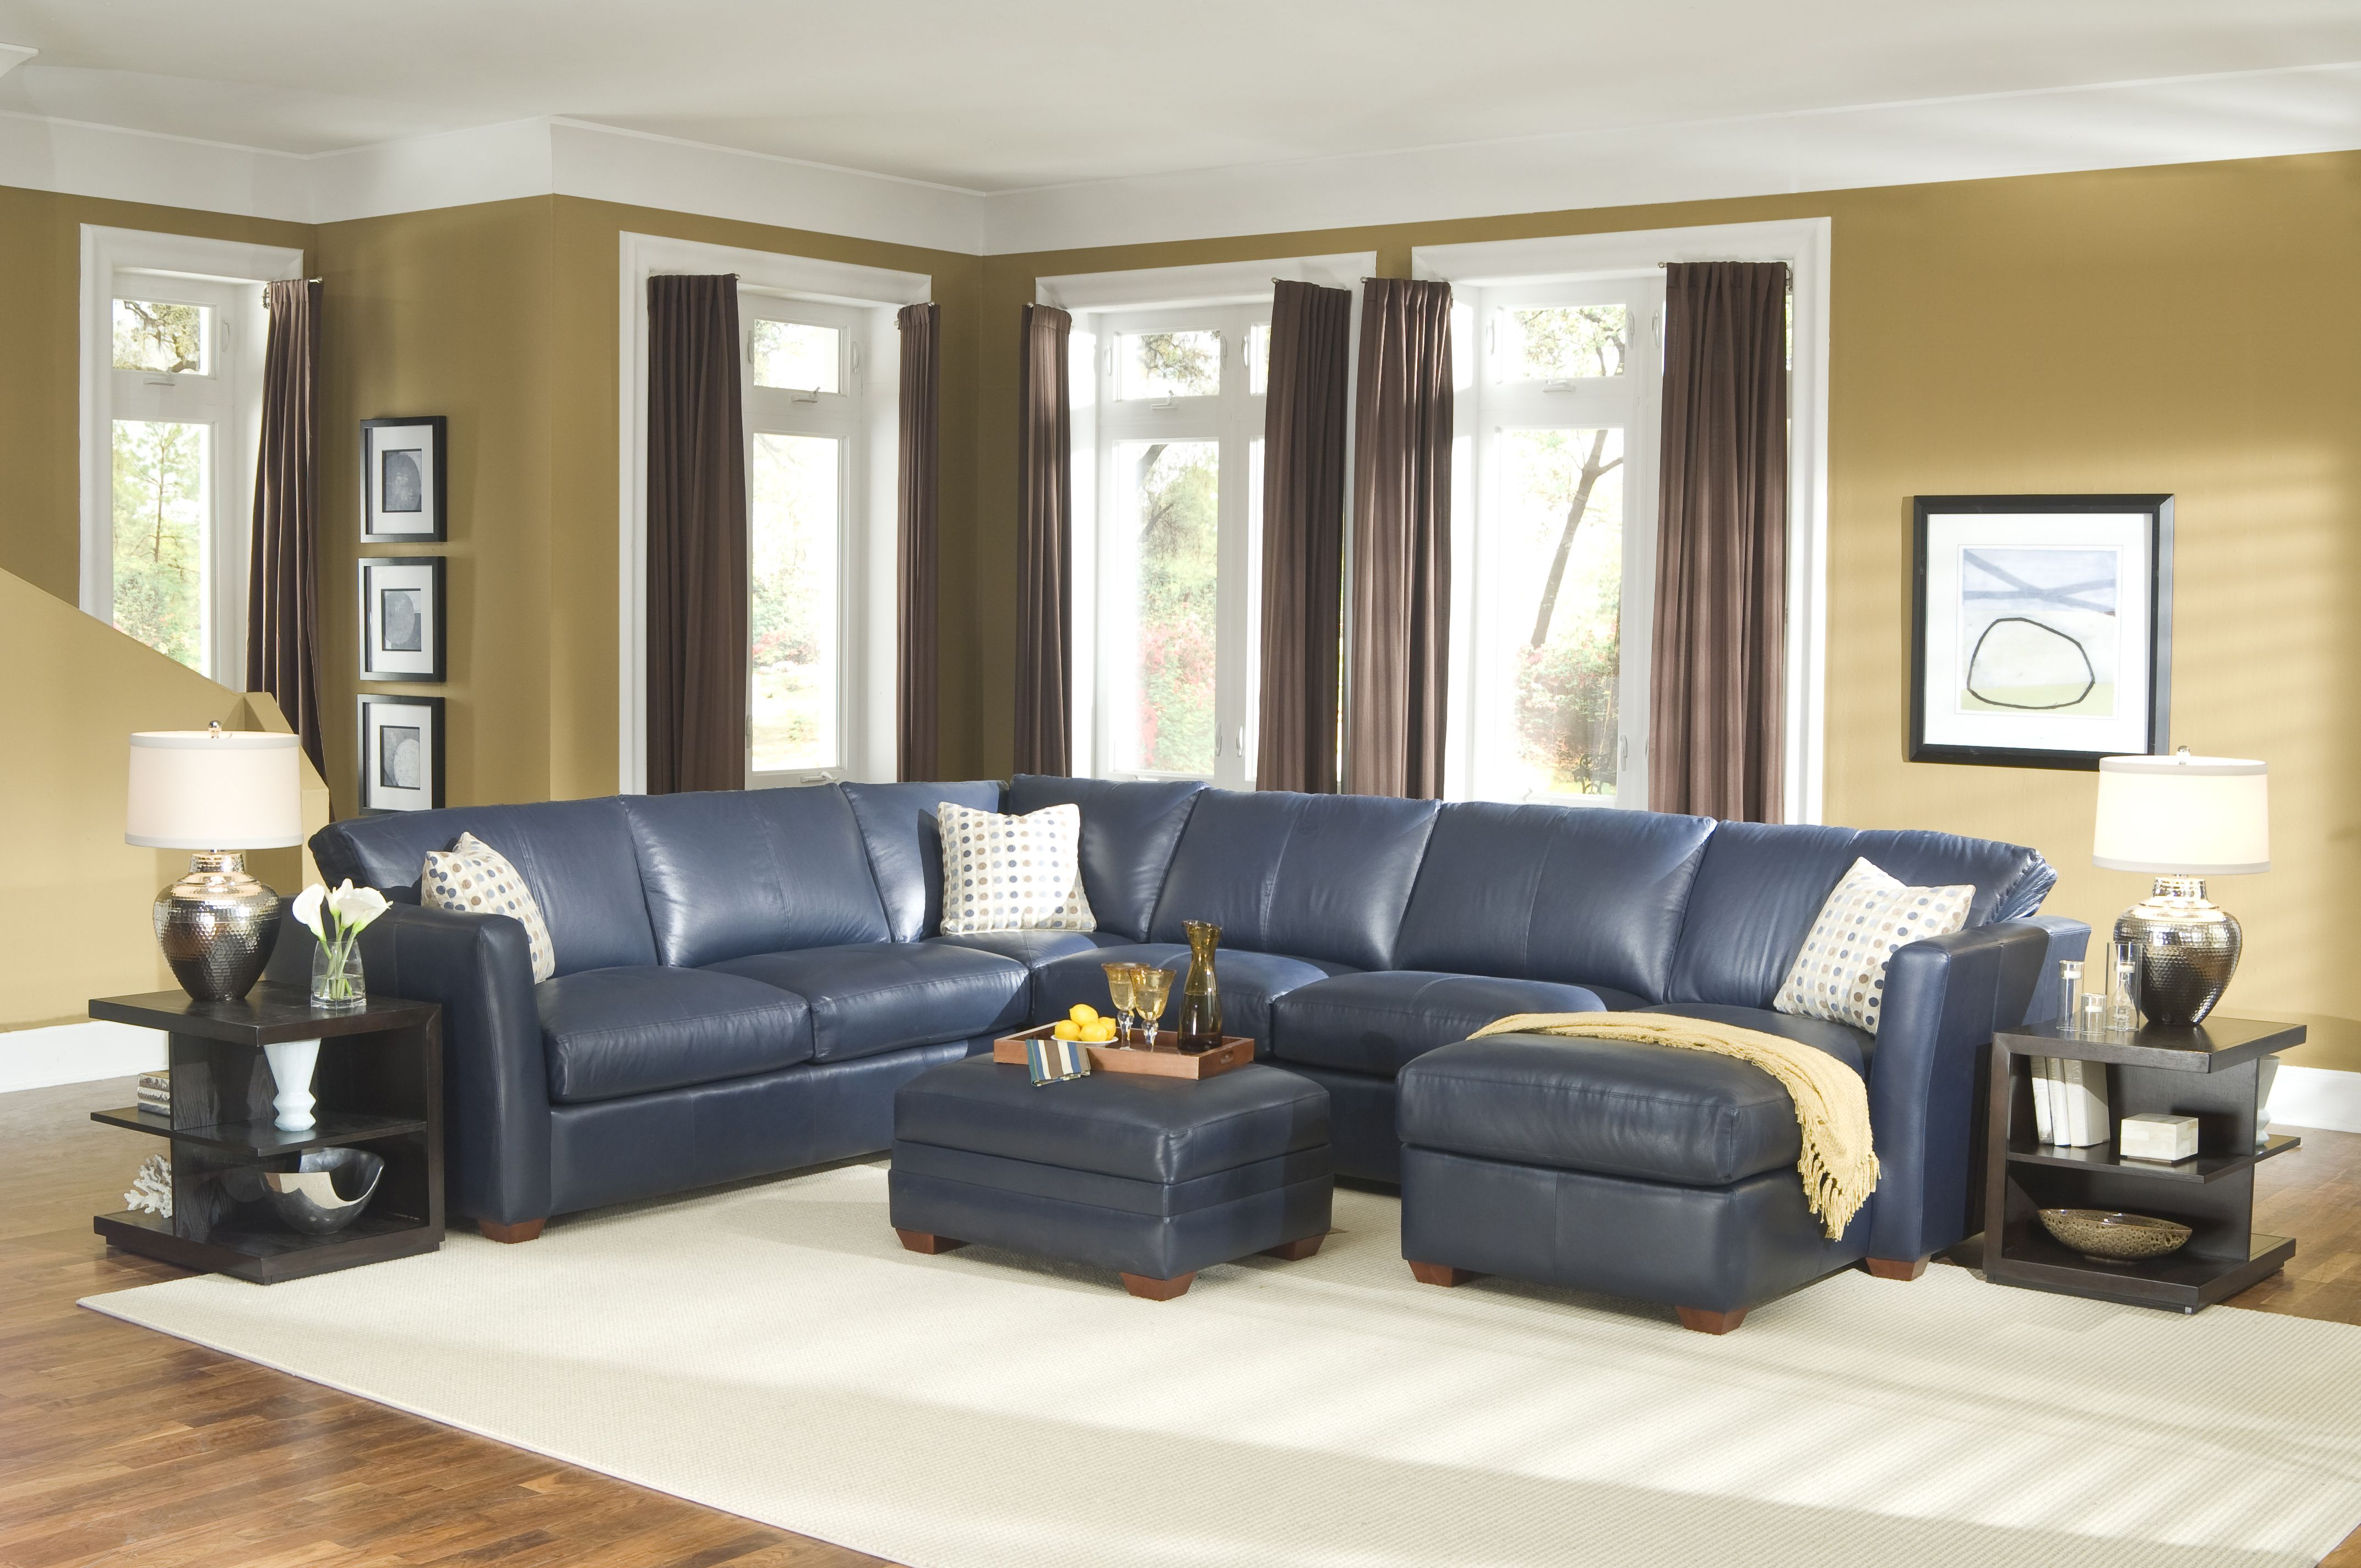 Brilliant Navy Blue Leather Sectional Sofa Living Room With